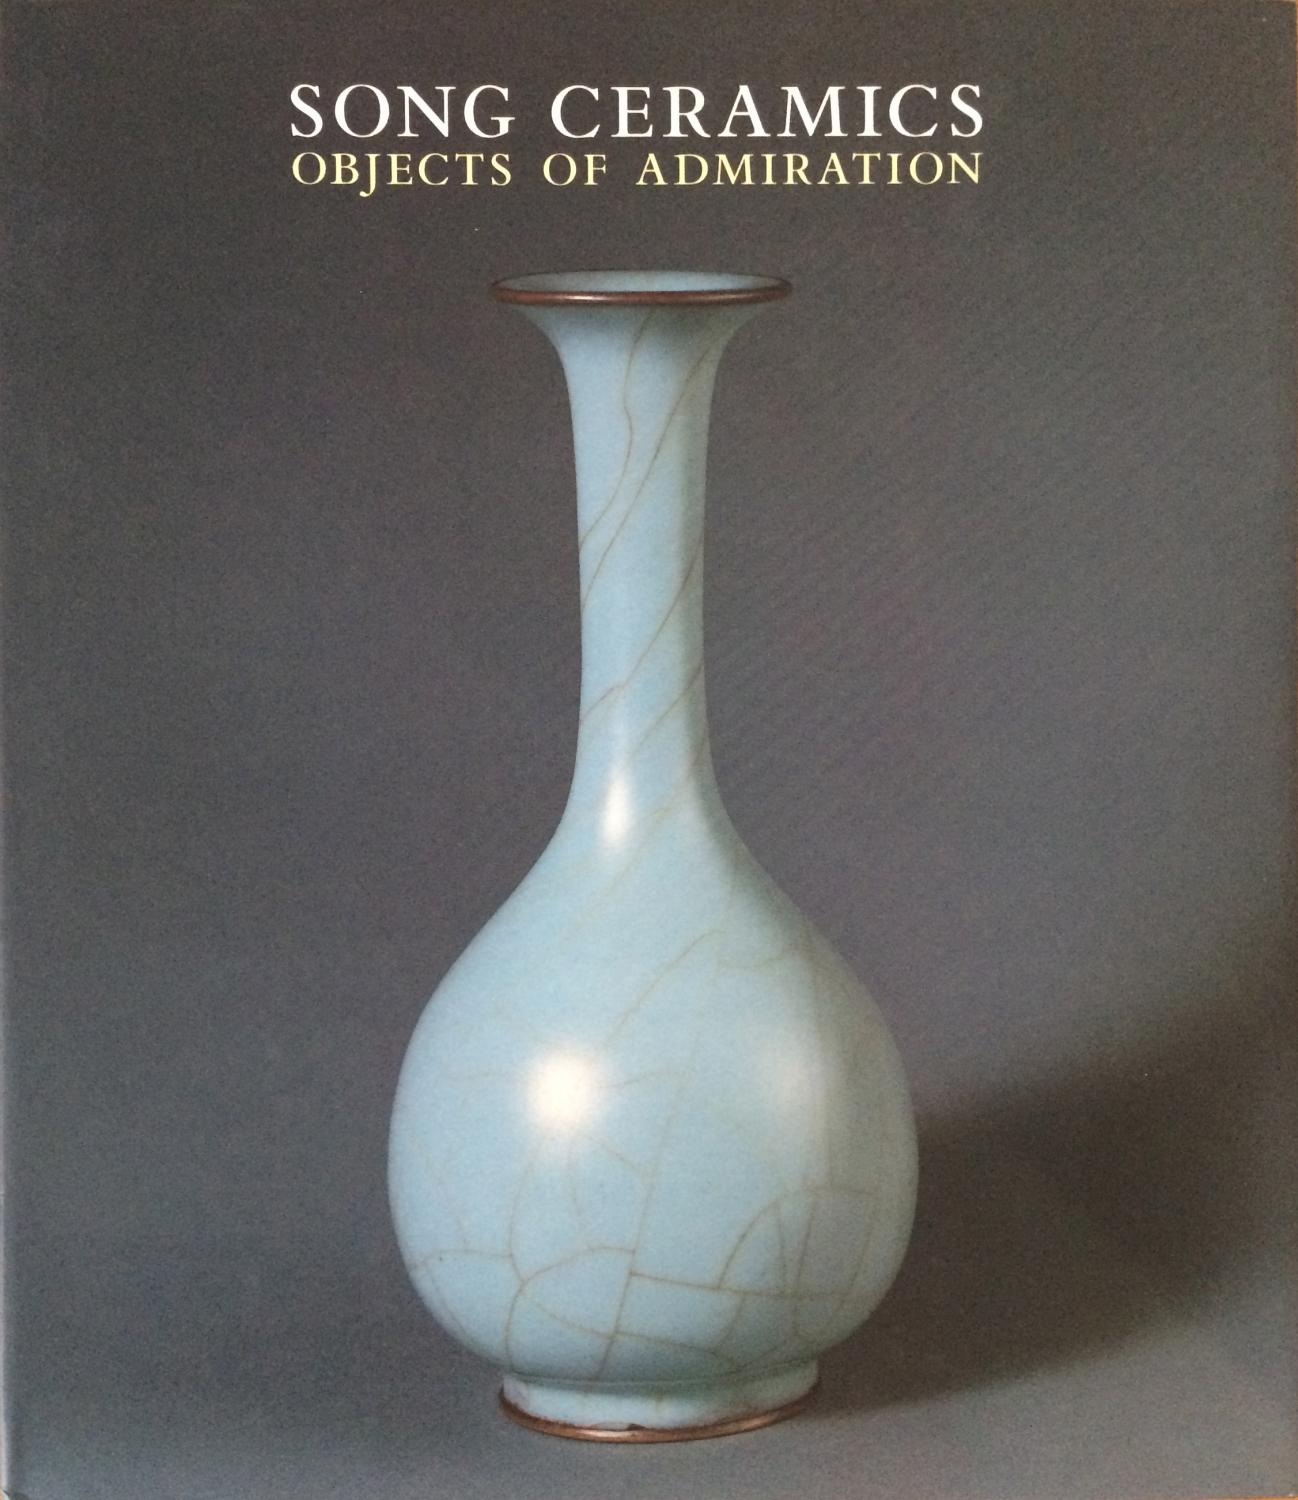 Song ceramics : objects of admiration: Stacey Pierson; Shane McCausland; Percival David Foundation ...